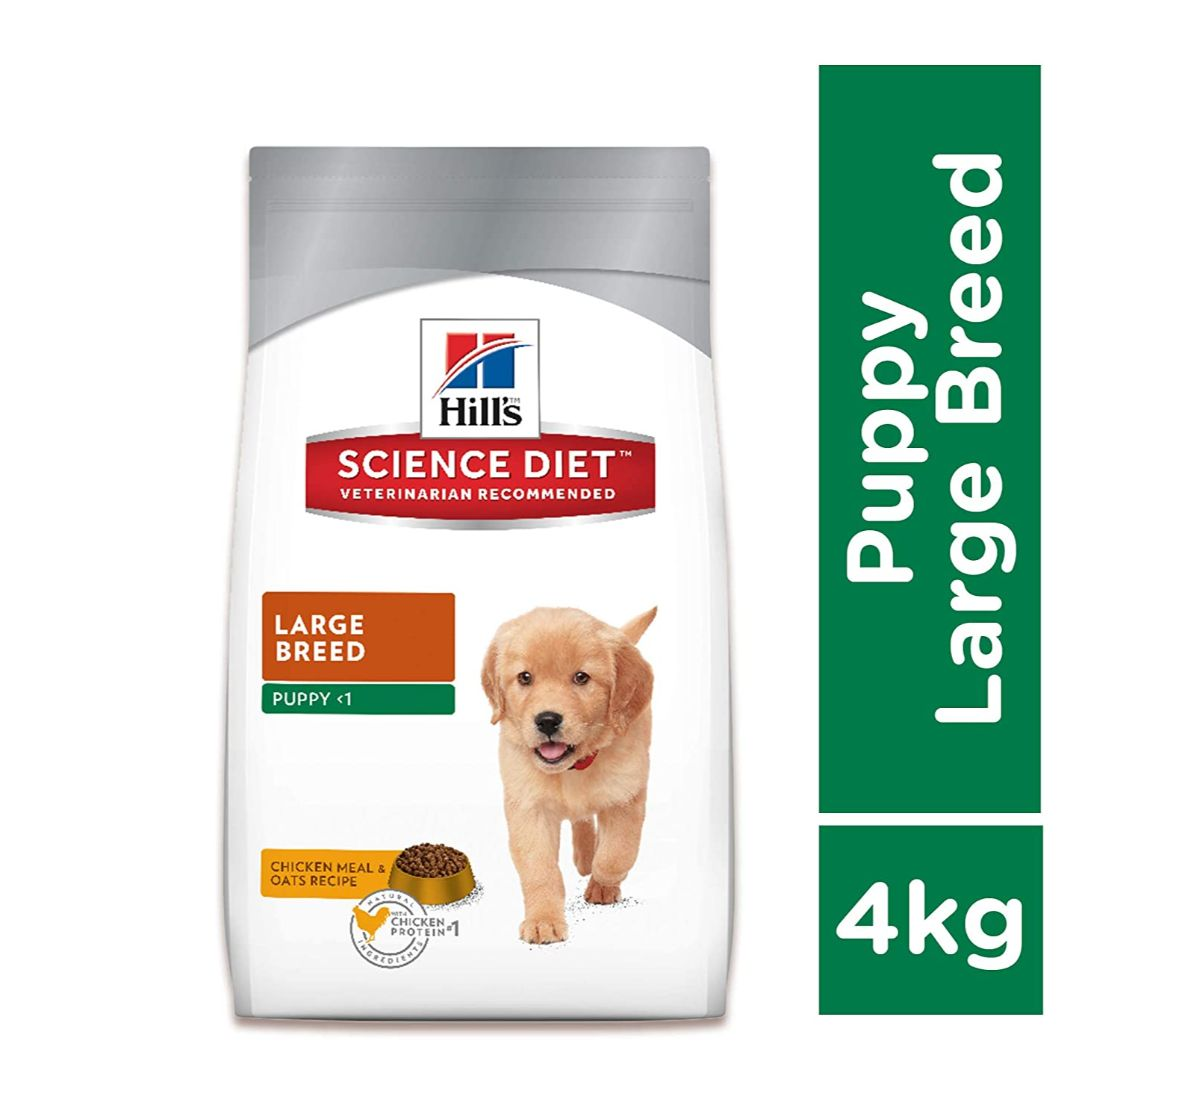 Hill's Science Diet Puppy Large Breed Chicken & Oats Dry Dog Food - 4 Kg